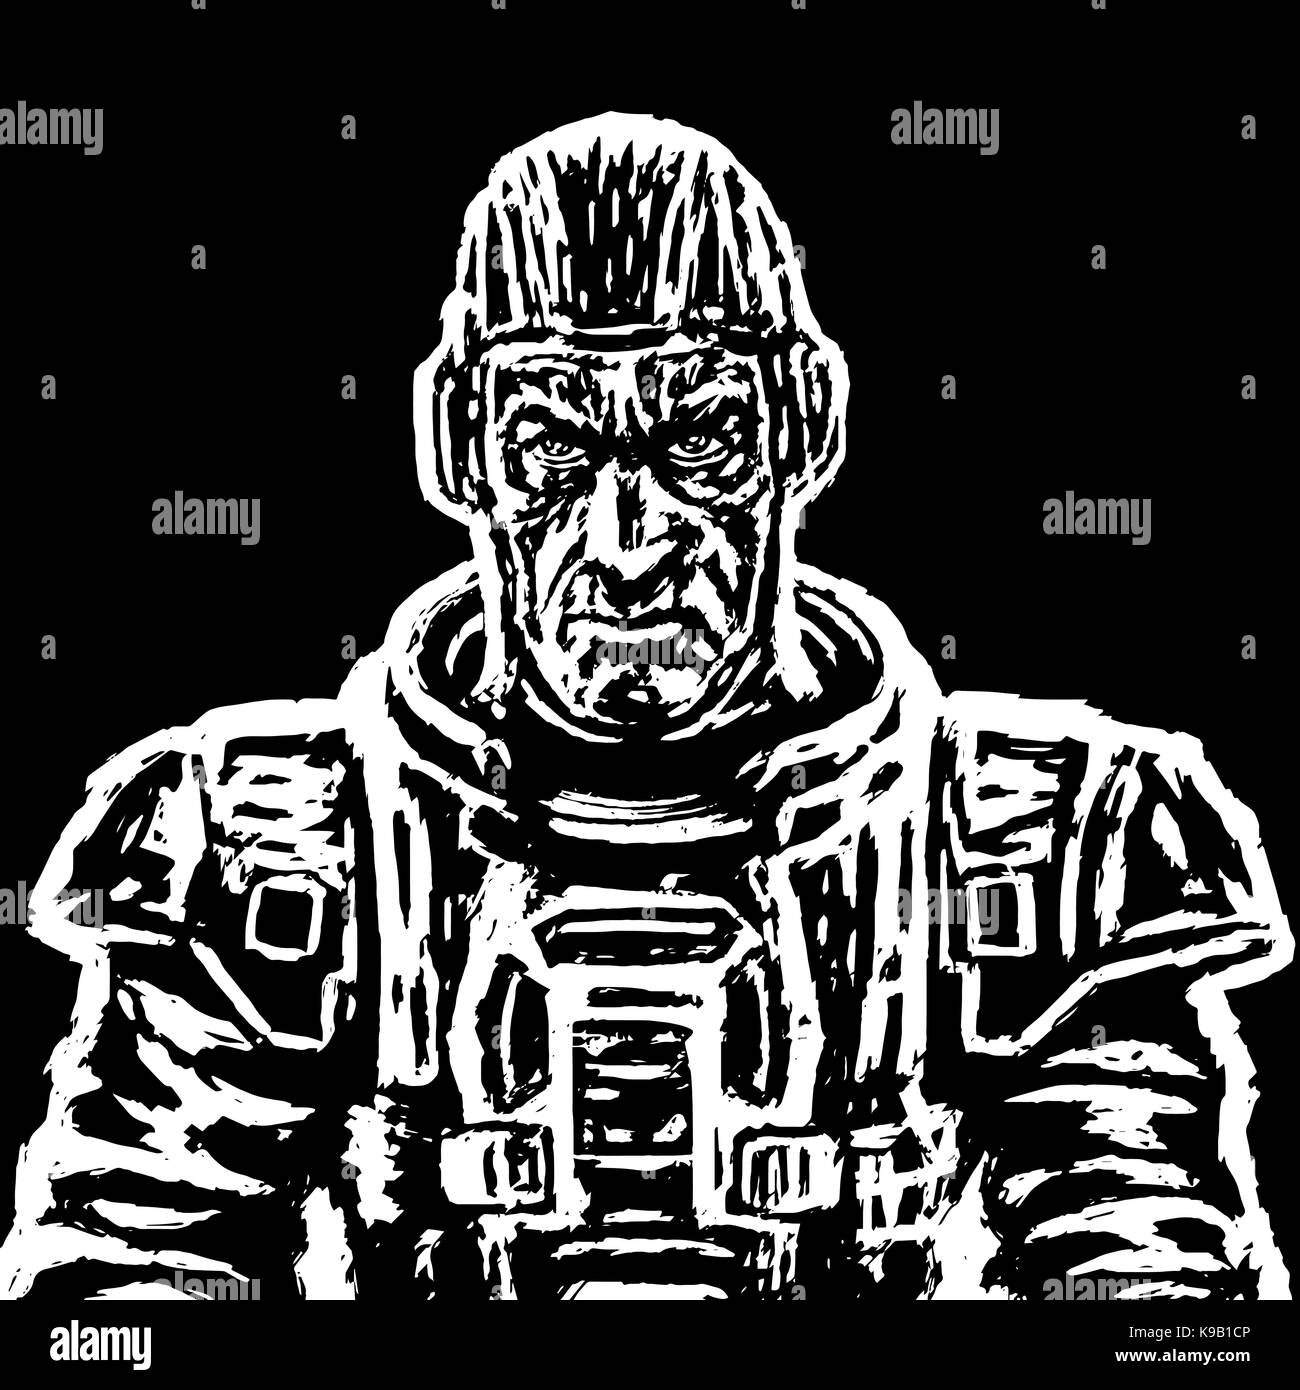 Old cosmonaut in a space suit without a helmet in black and white colors. Vector illustration. Heroic face. Science - Stock Image